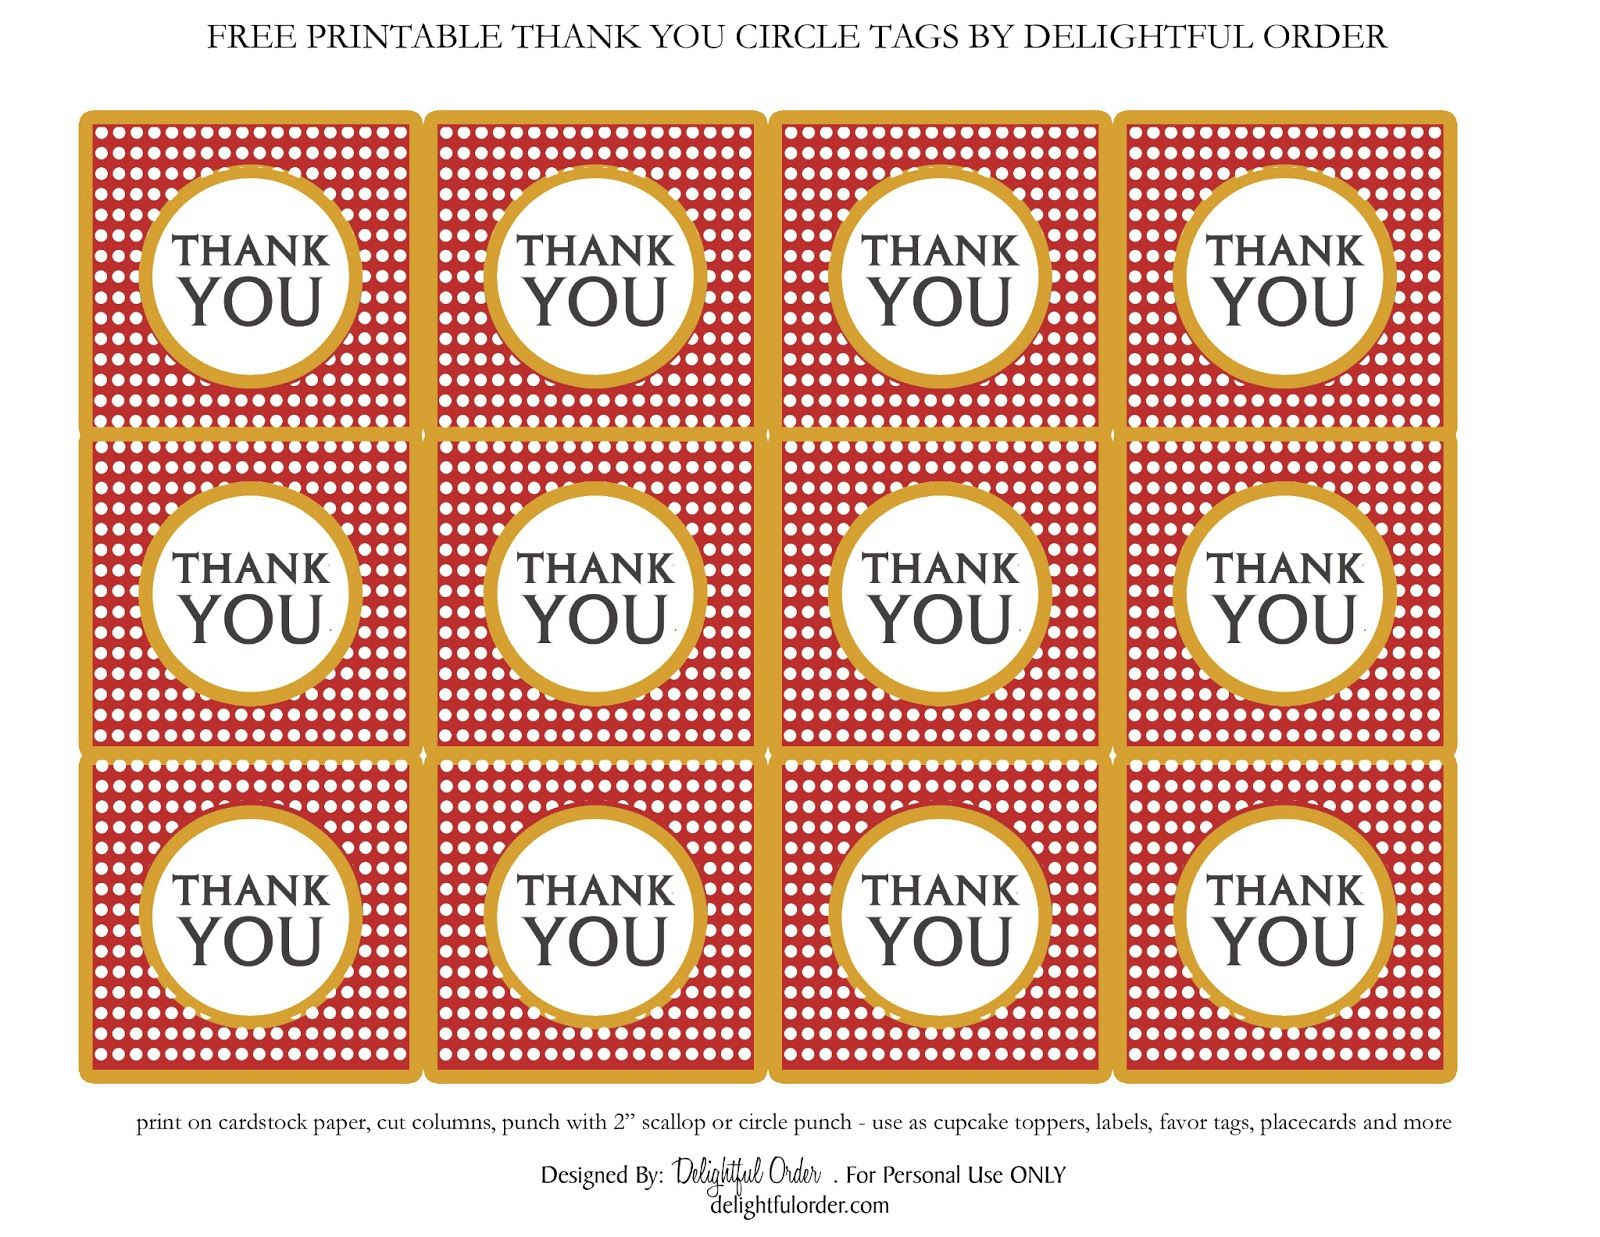 Delightful Order: Free Printable Thank You Circle Tags | Digi - Free Printable Thank You Tags